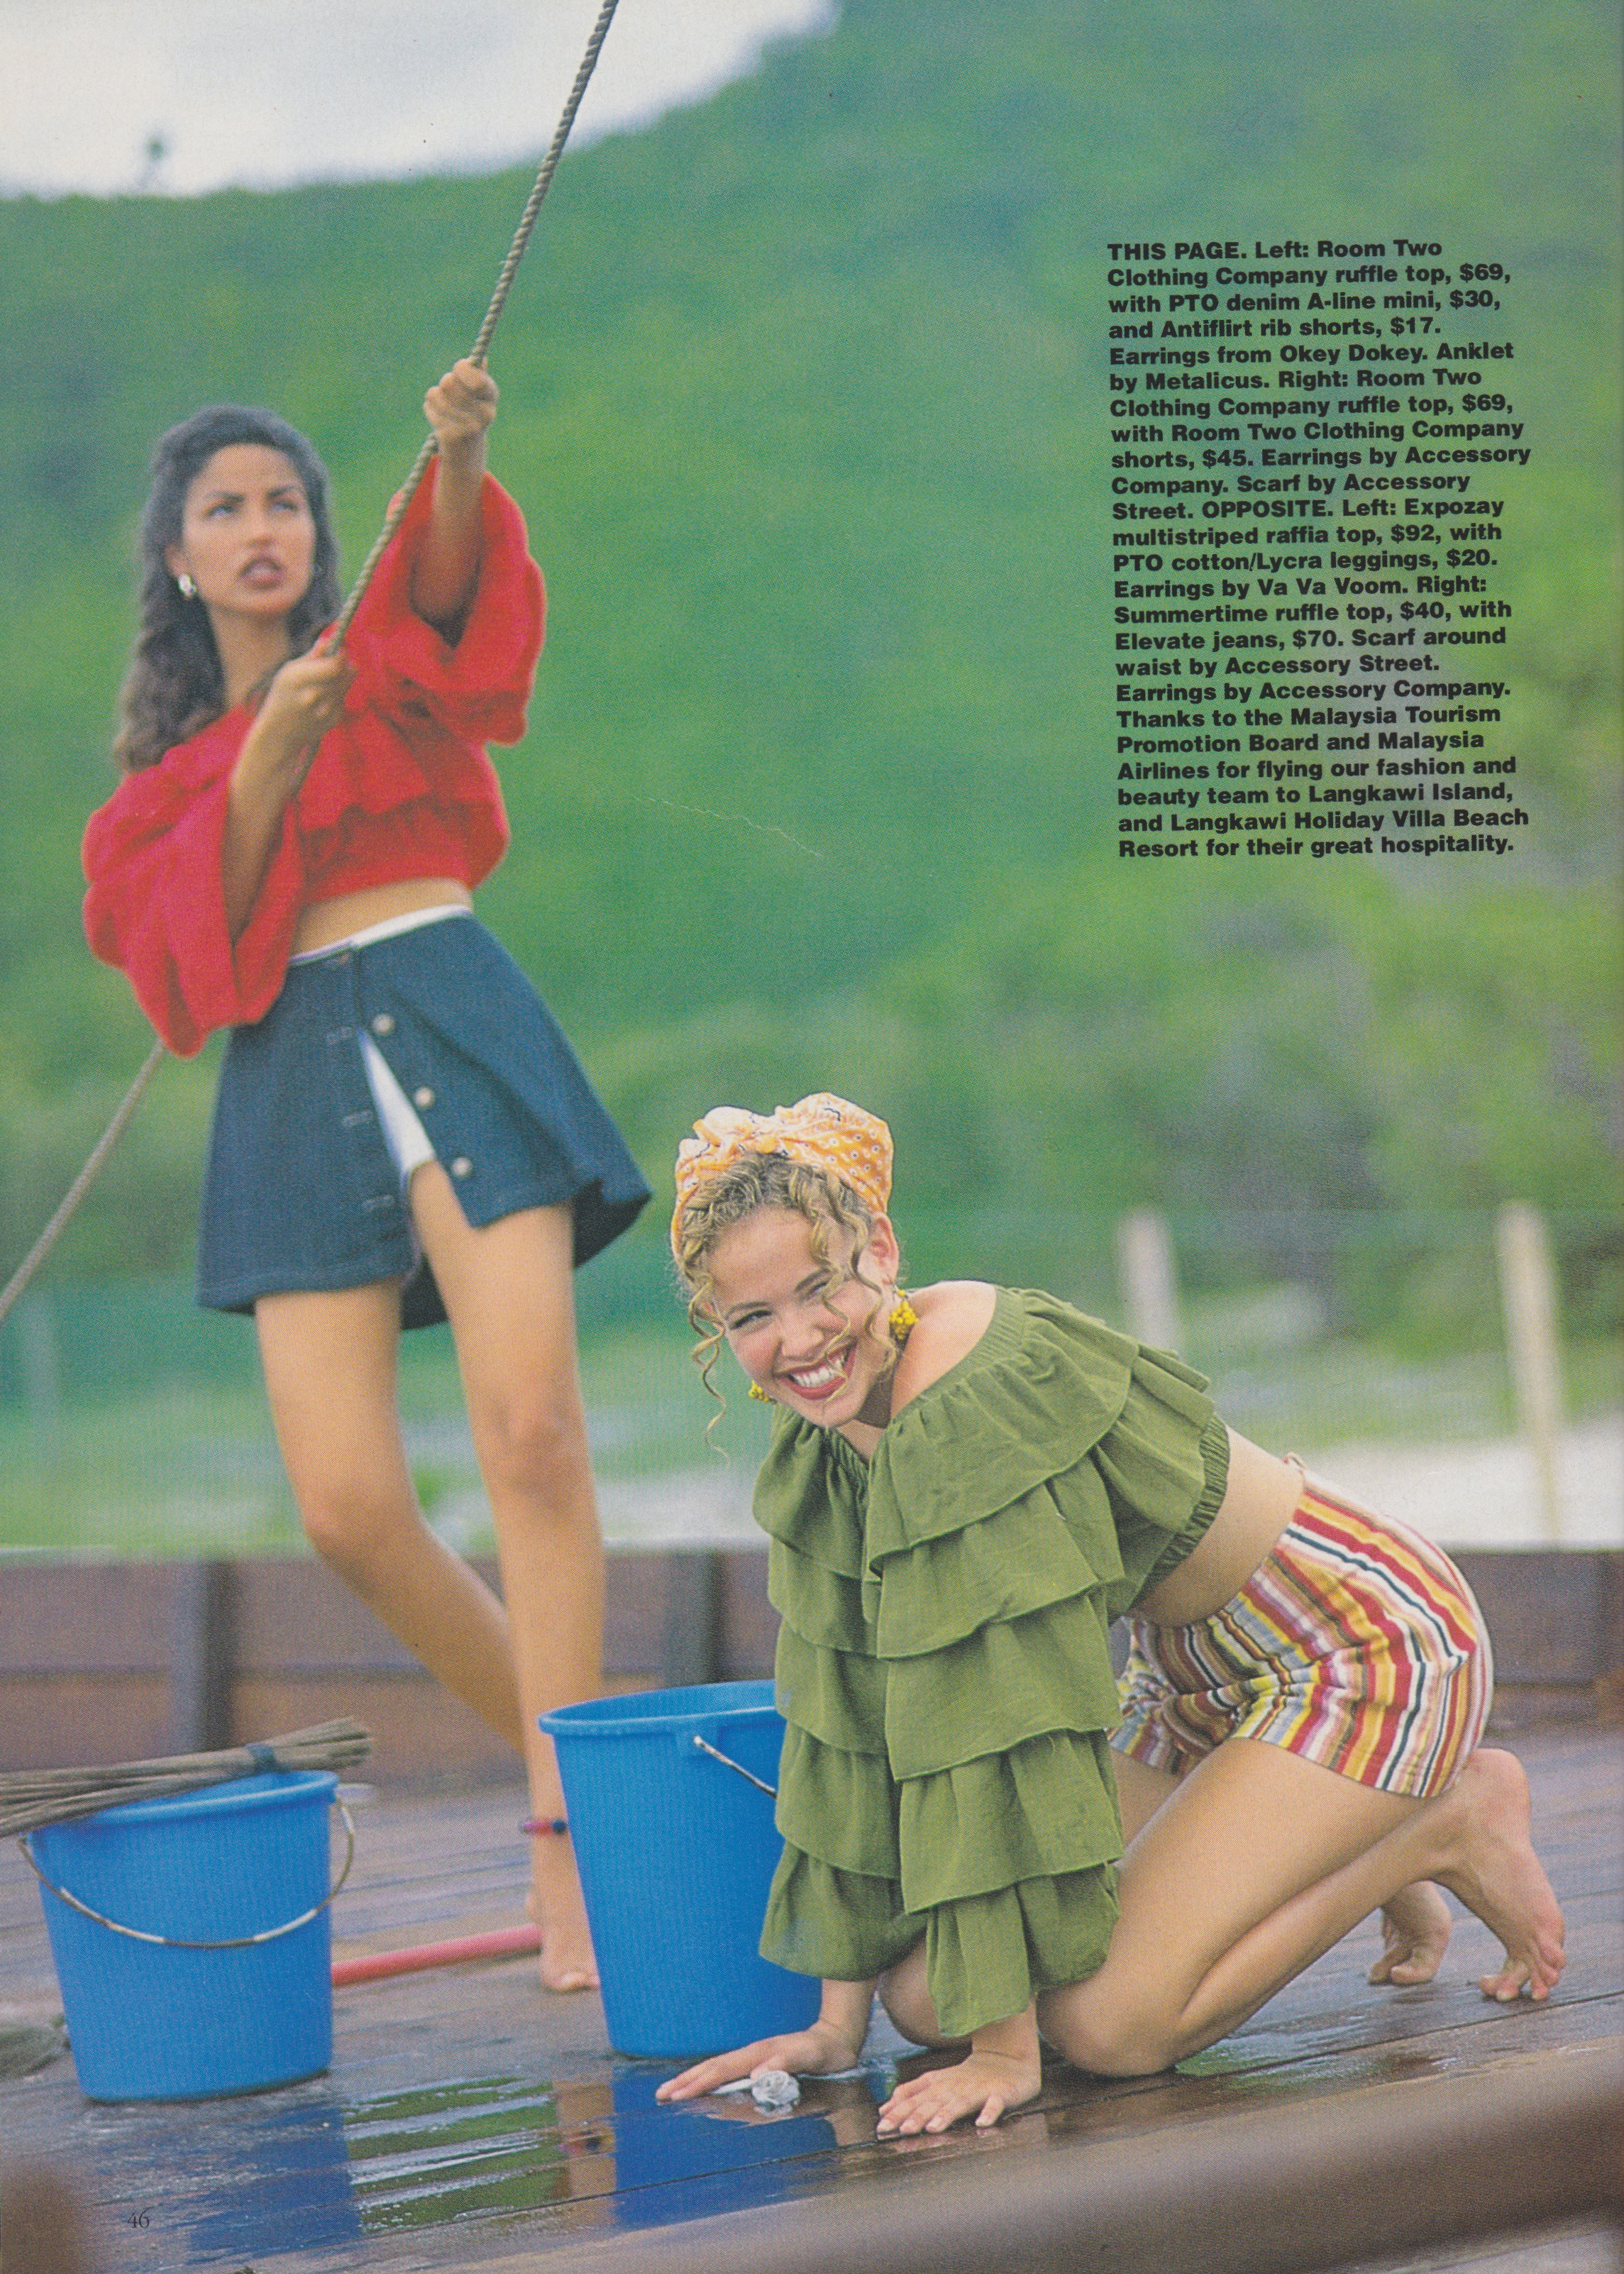 Dolly December 1992 | Camille Bancroft & Stacey Meier 07.jpeg